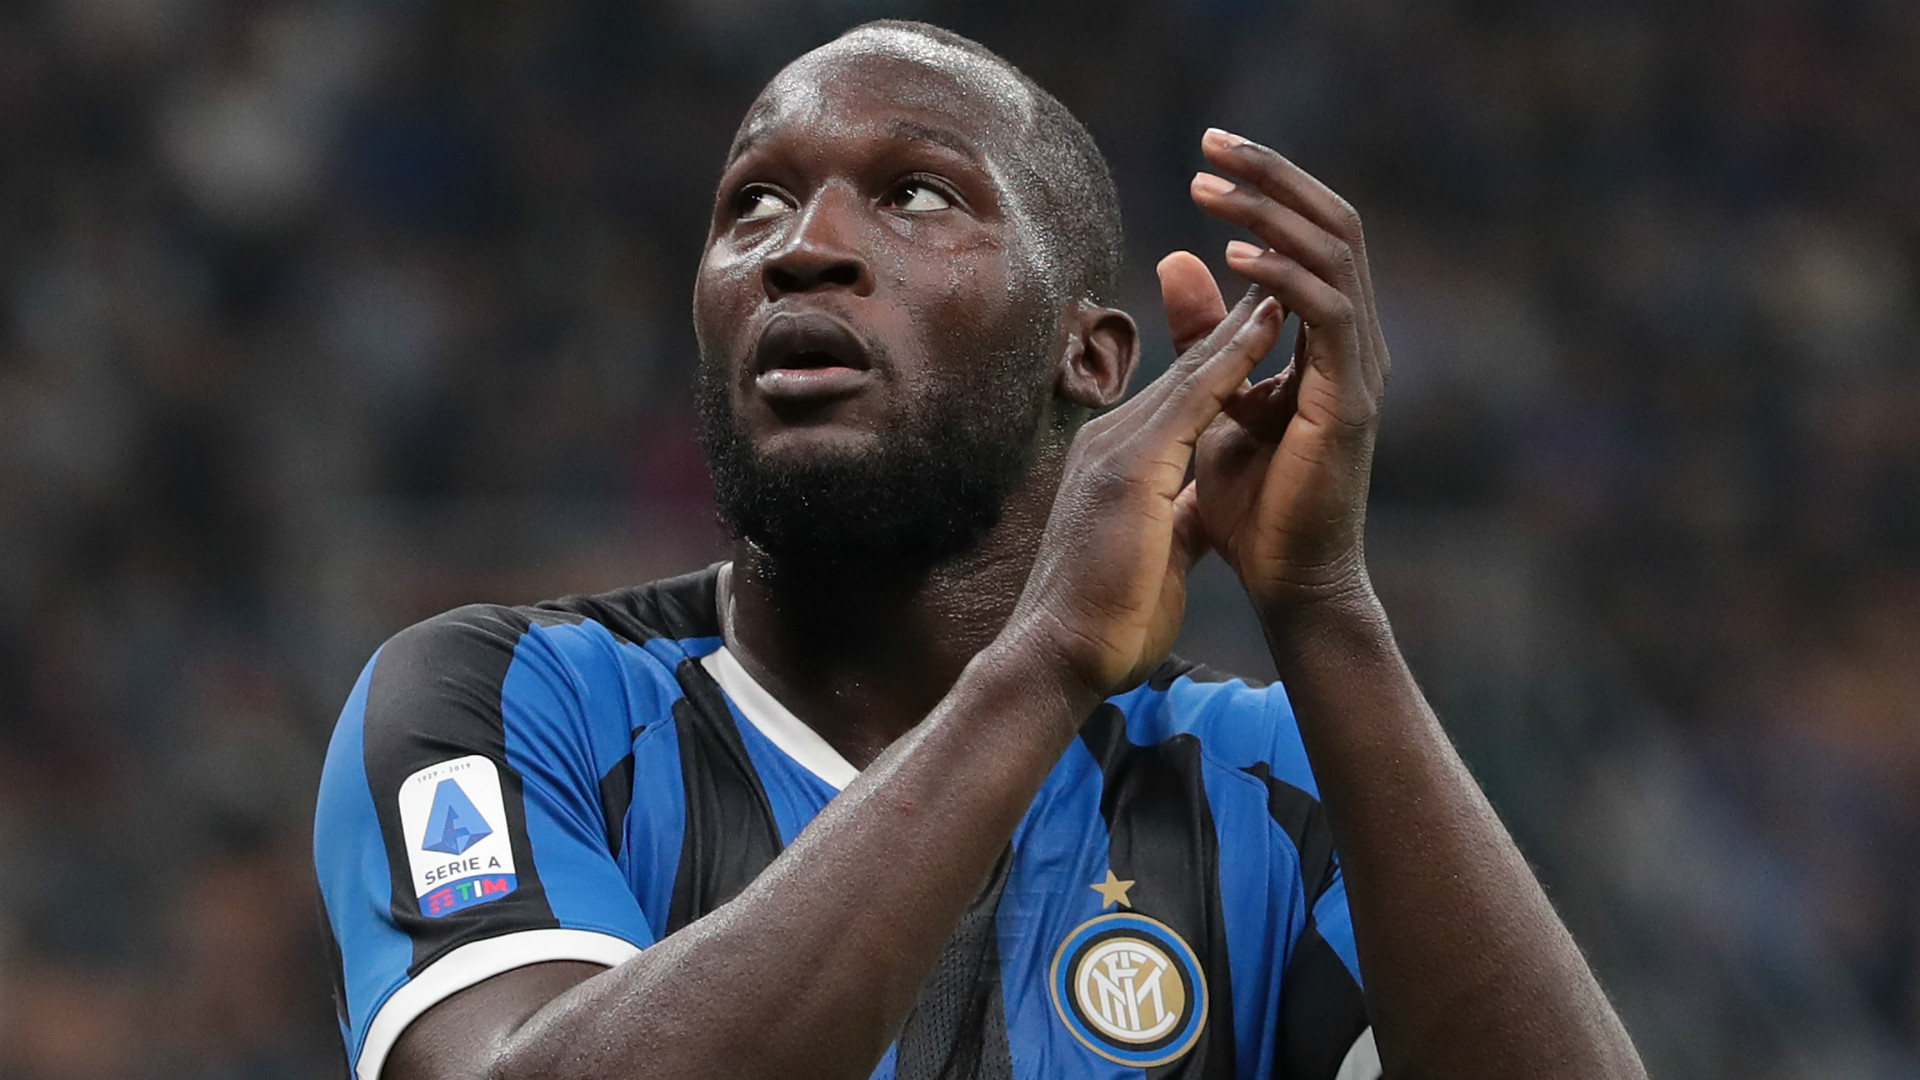 'Lukaku is a bull & doing extraordinary things at Inter' – Vieri sees Belgian as a rightful heir at San Siro